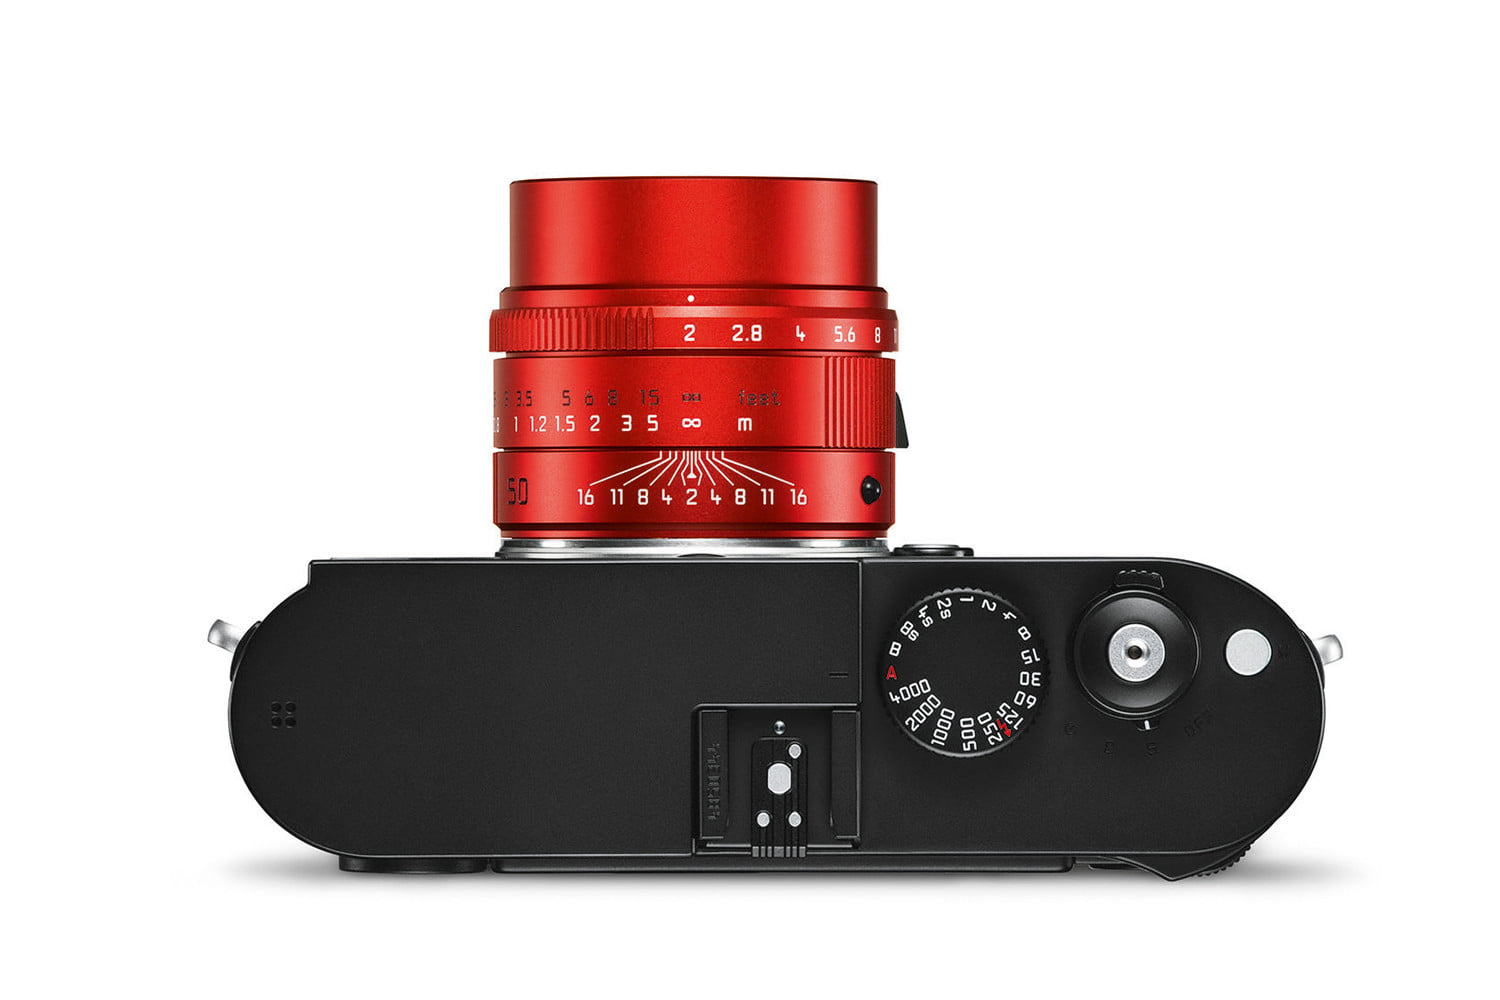 leica first special edition lens apo summicron m red monochrom top cmyk